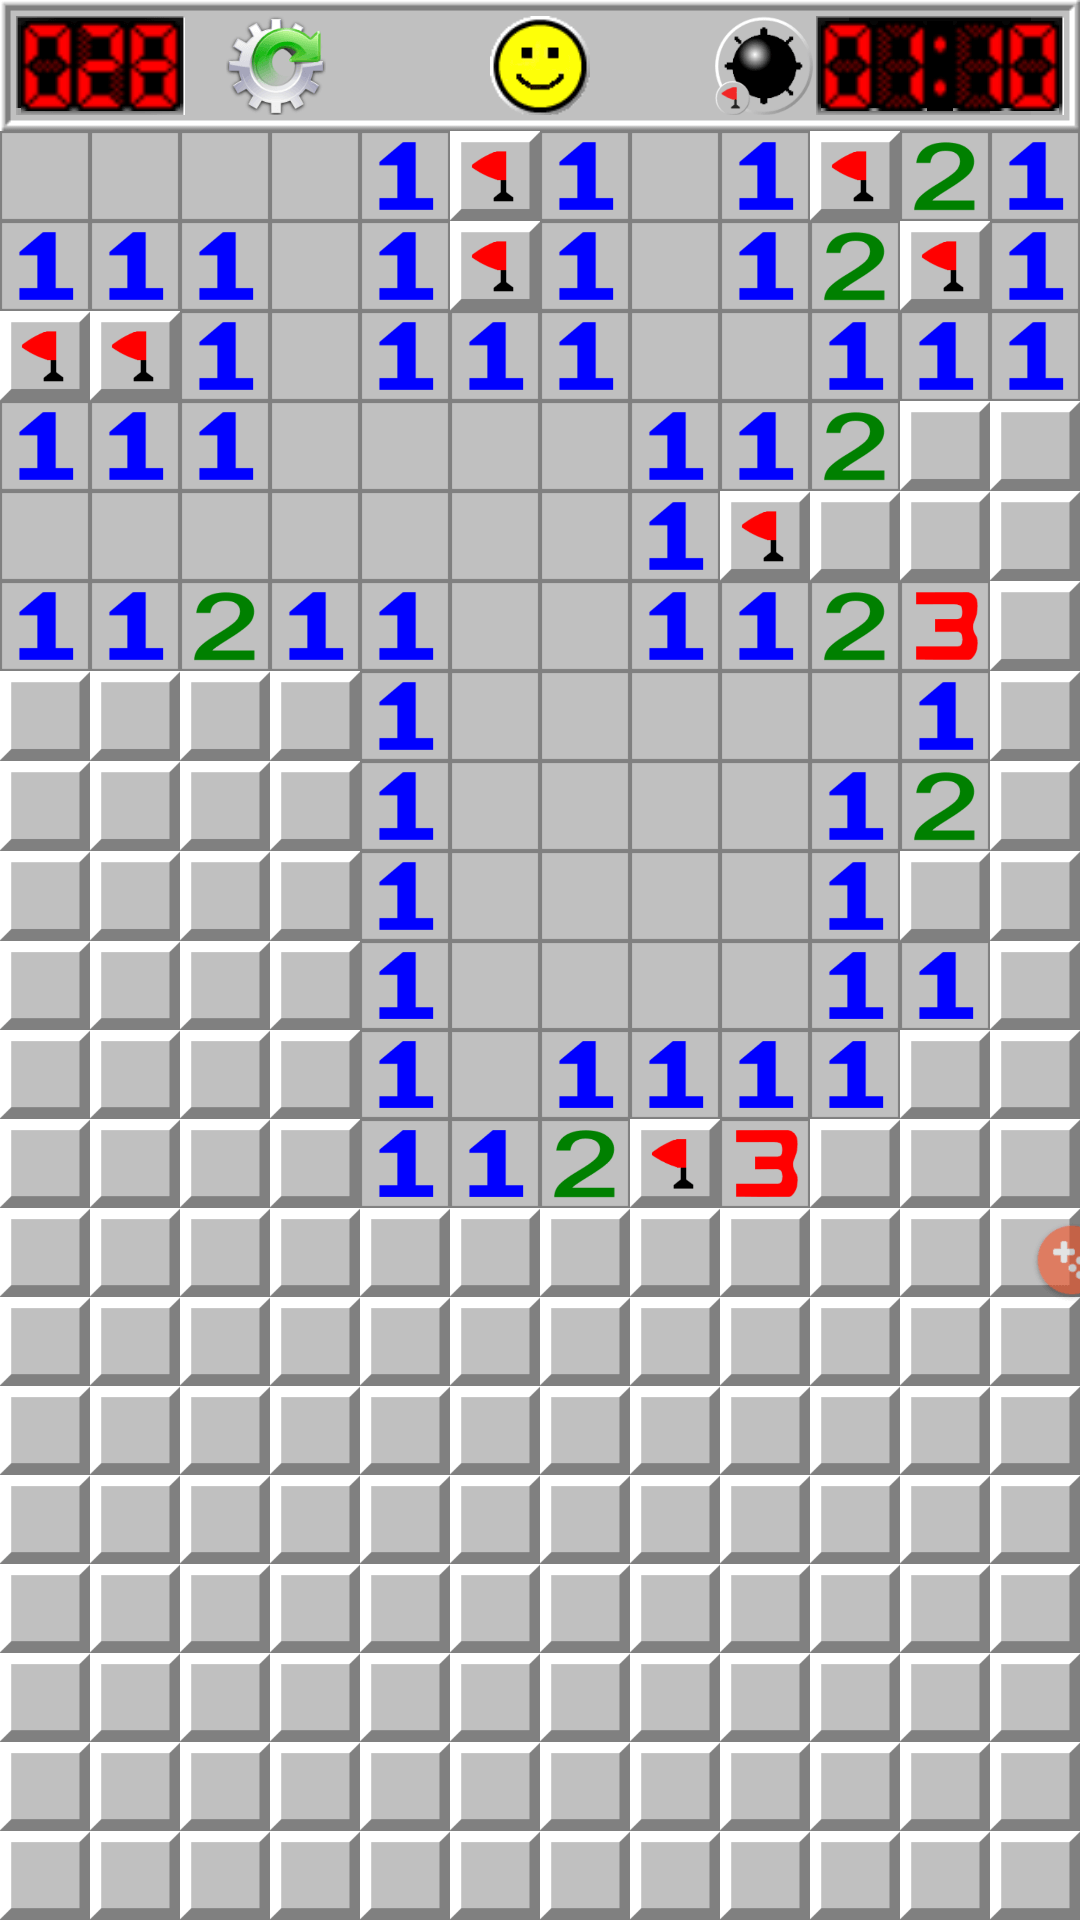 minesweeper rules